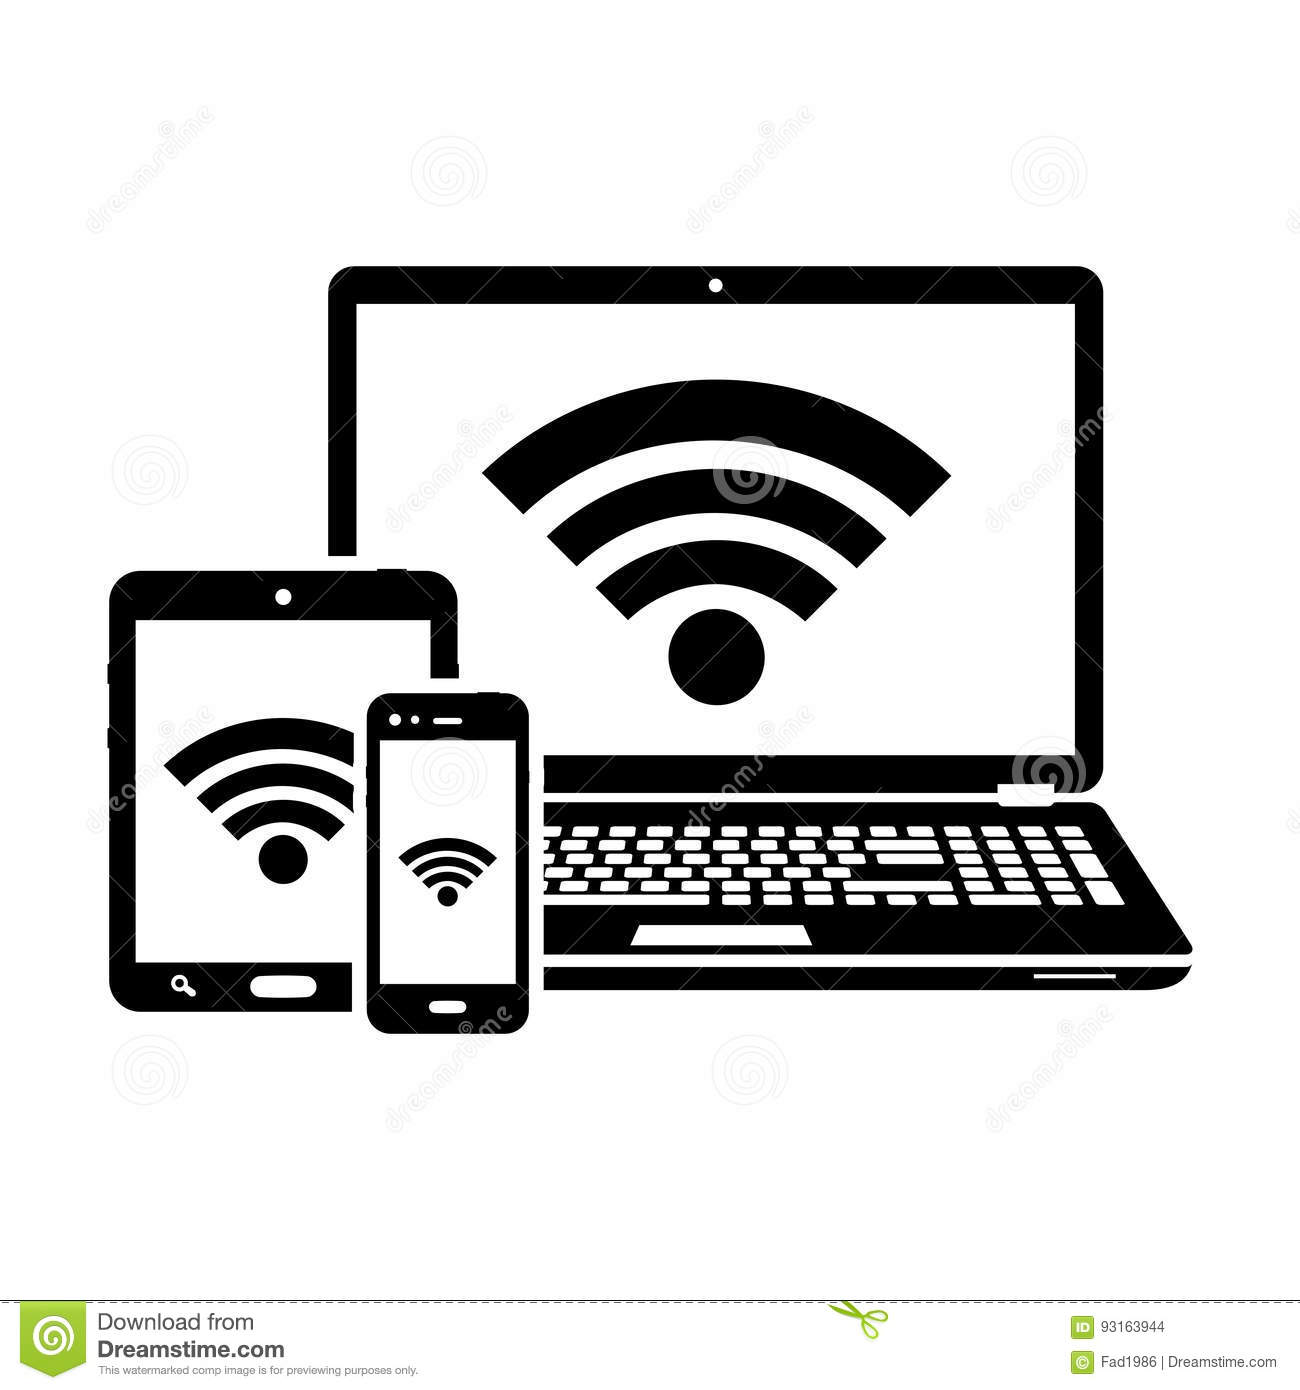 Laptop Tablet And Smartphone Icons With Wifi Internet Connection